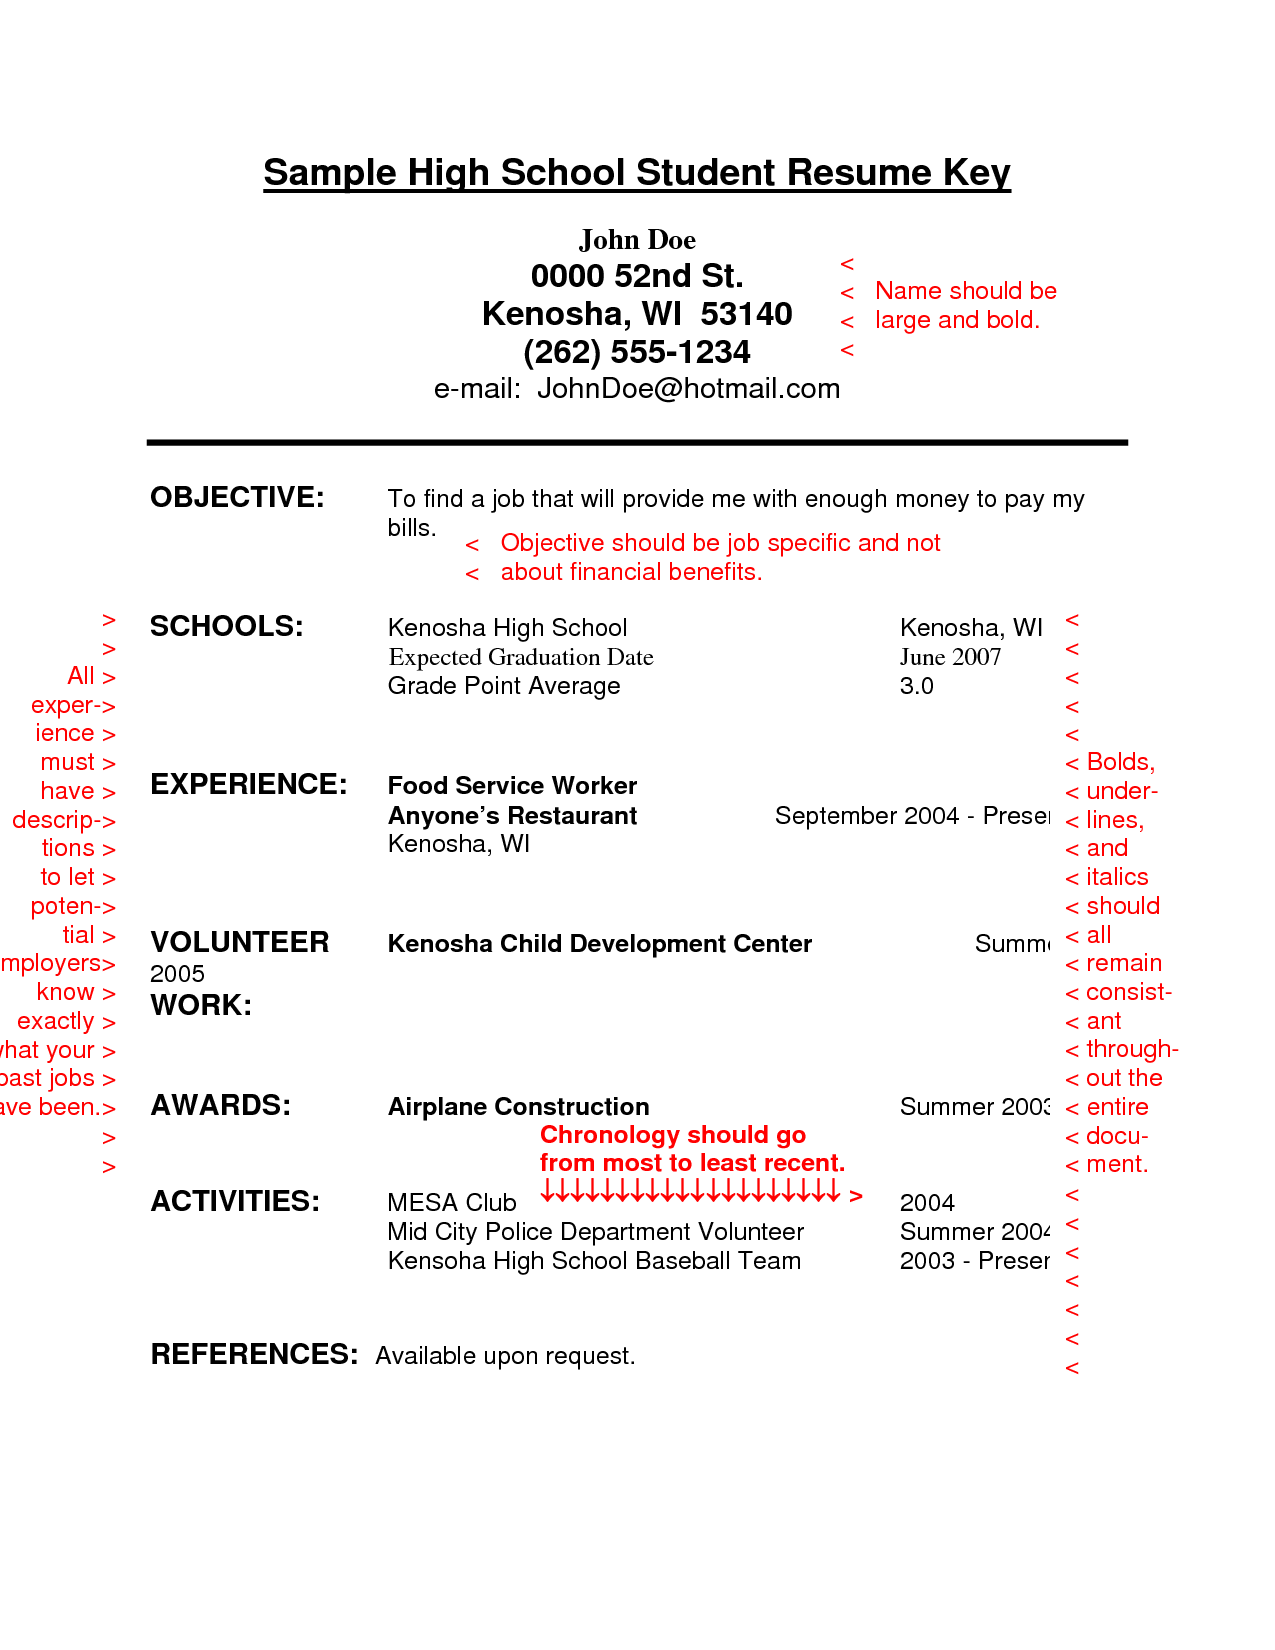 Resume Examples For High School Students | 1-Resume Examples ...